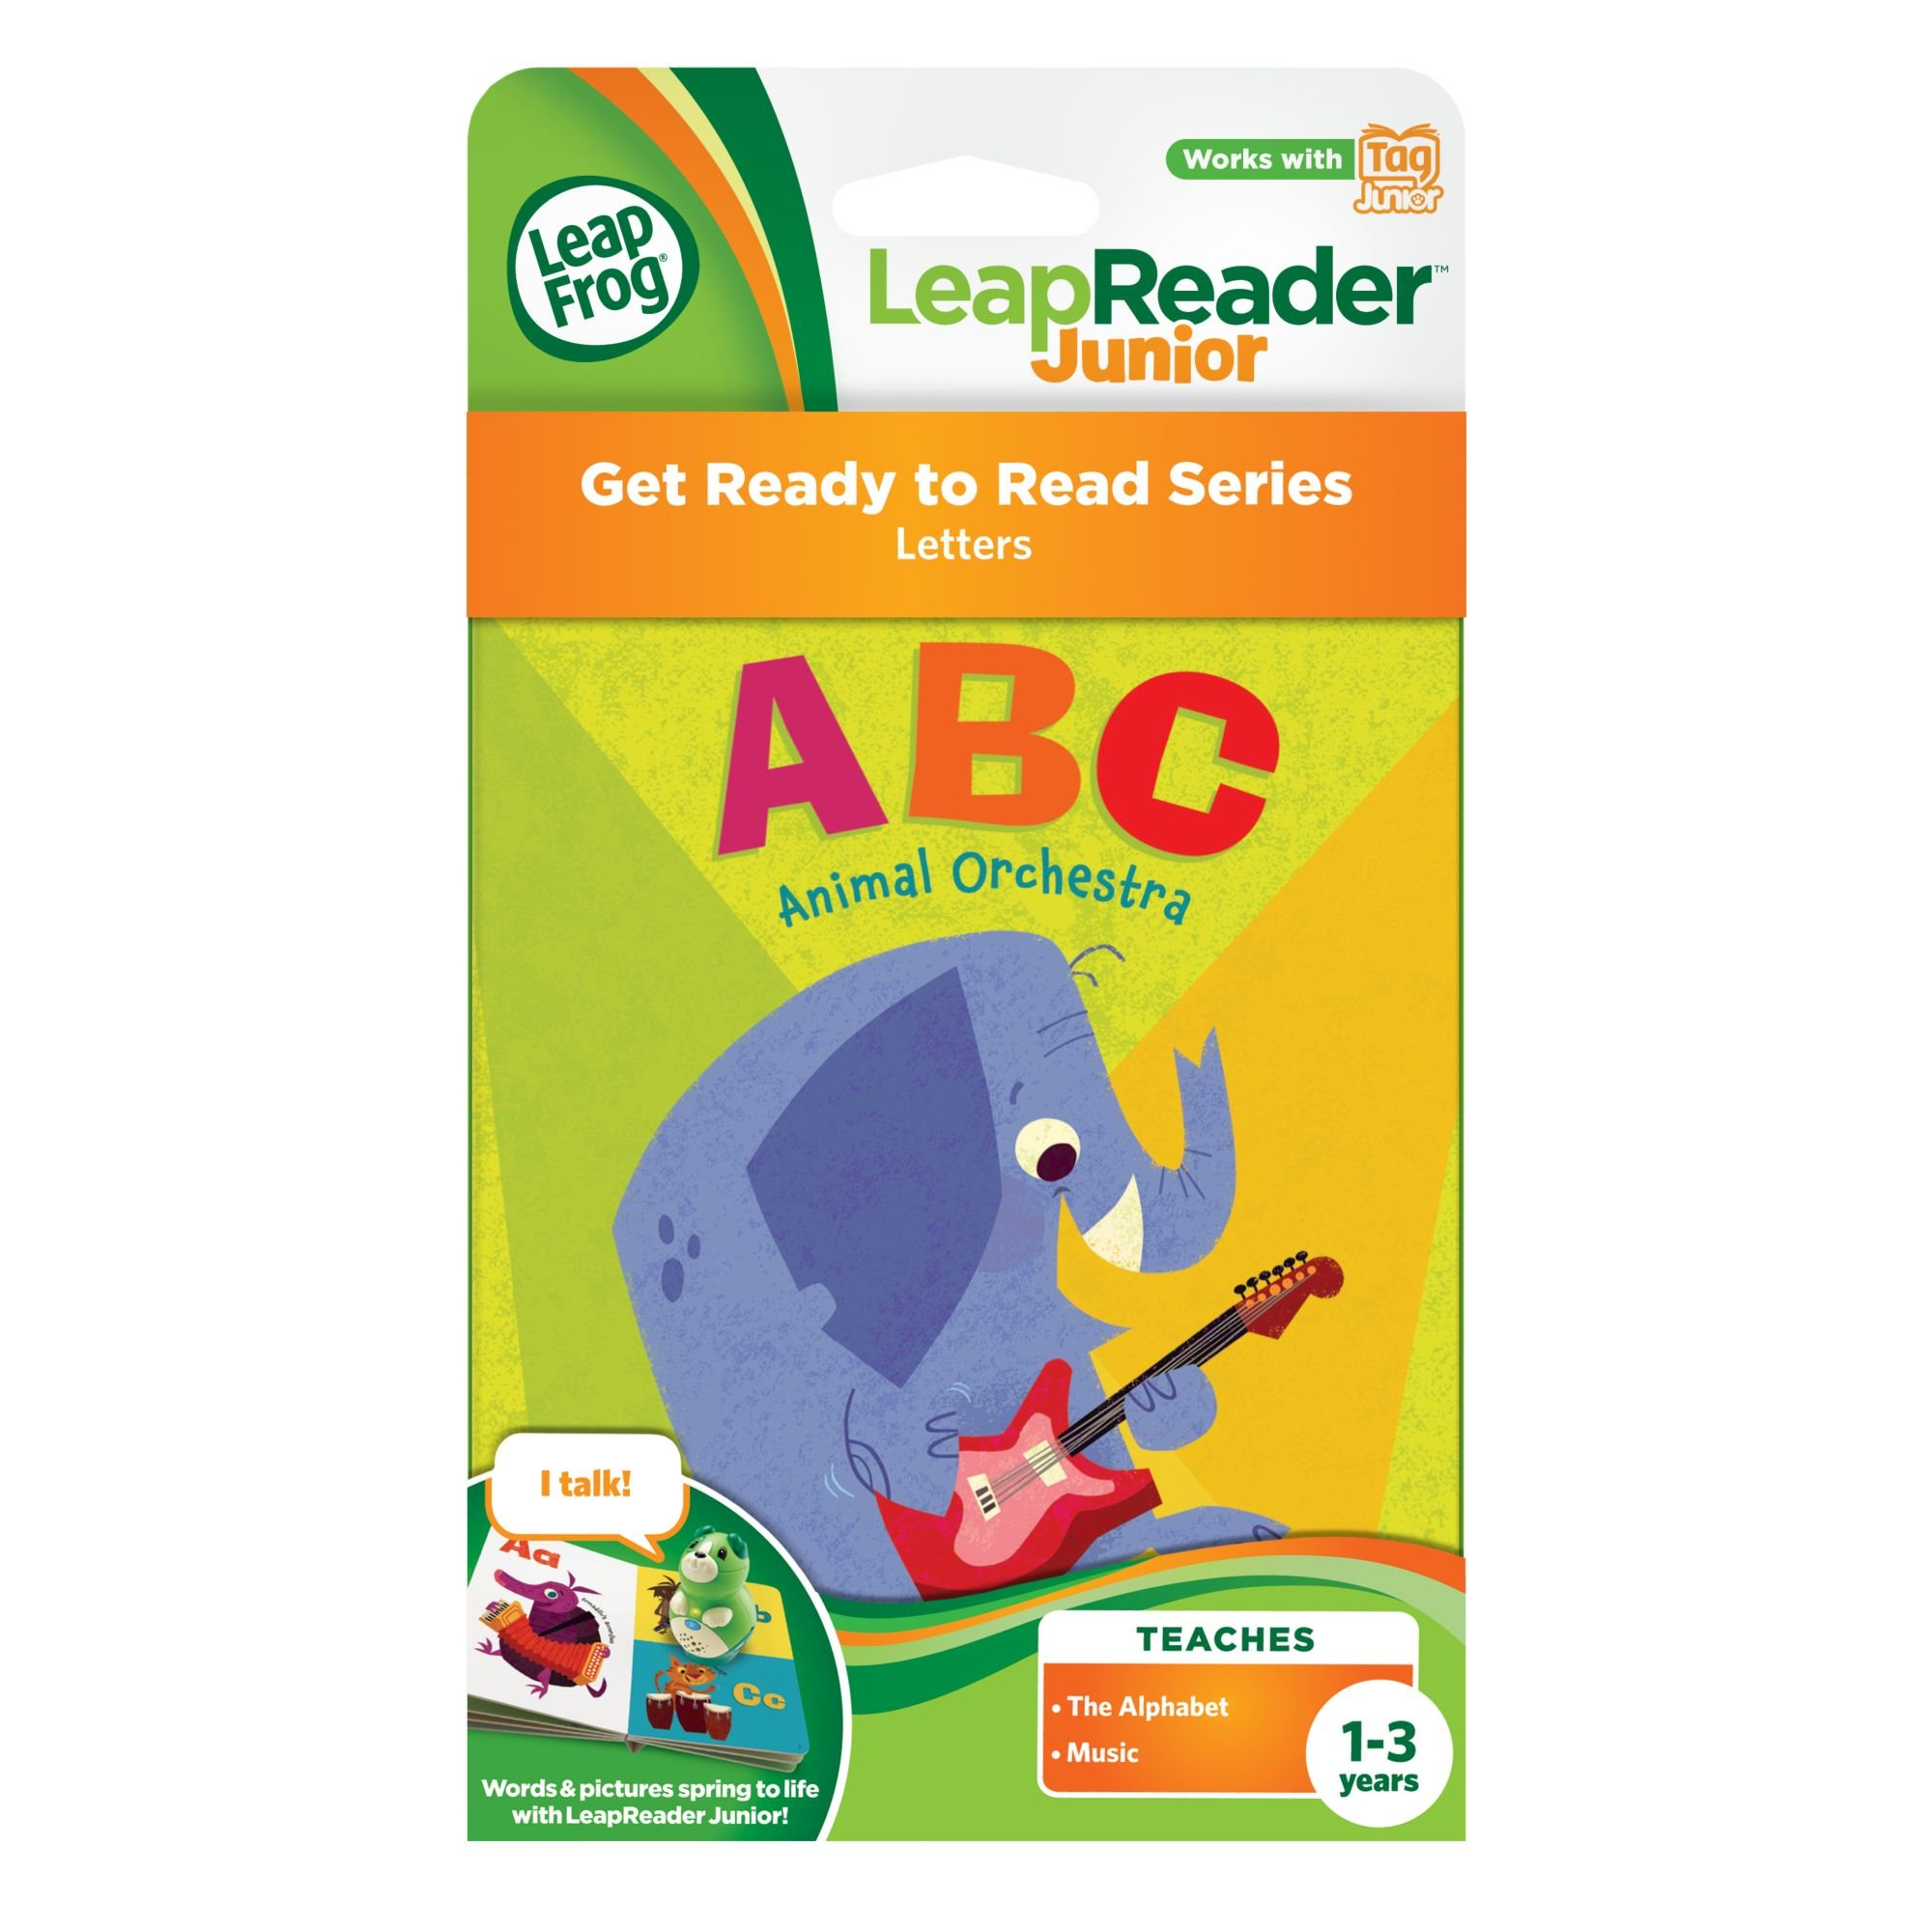 LeapFrog LeapReader Junior Book: ABC Animal Orchestra (works with Tag) by LeapFrog (Image #3)